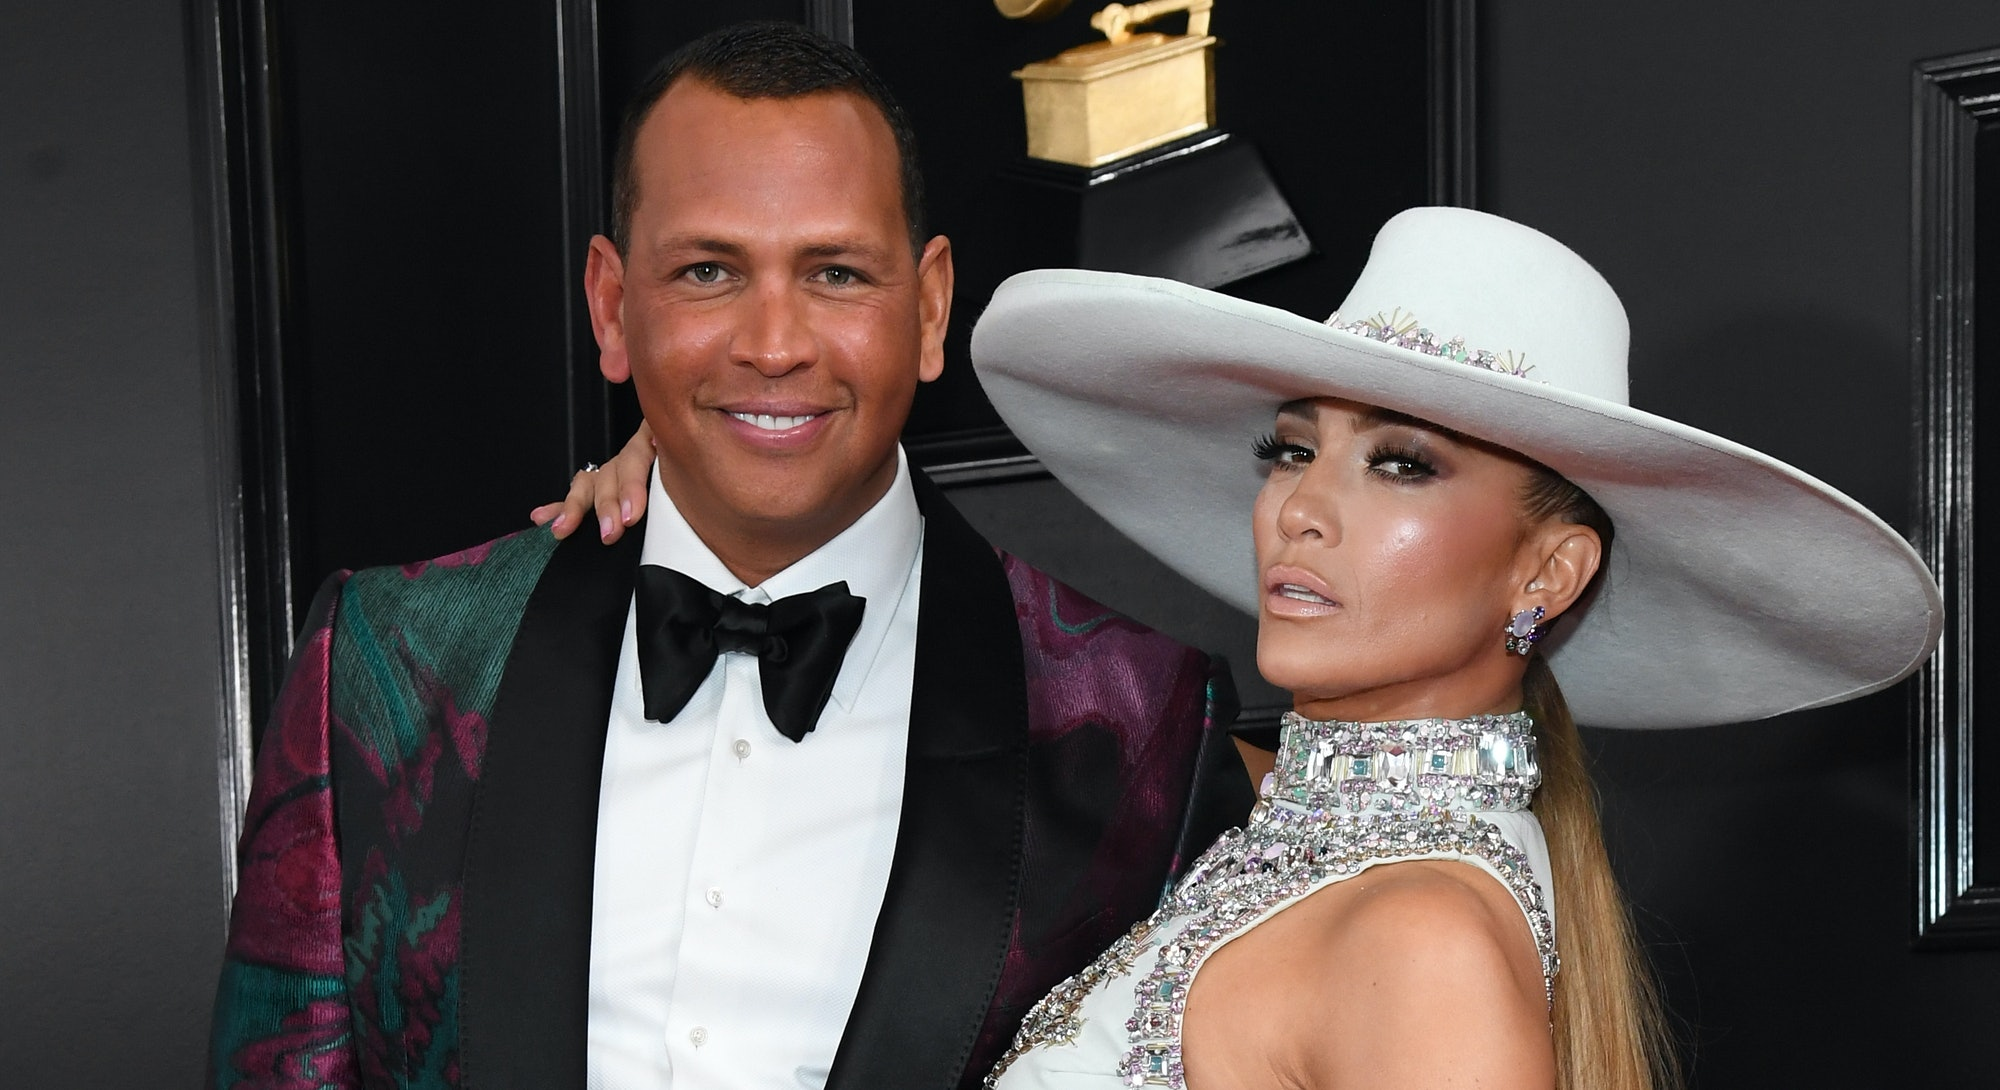 LOS ANGELES, CA - FEBRUARY 10:  Alex Rodriguez and Jennifer Lopez attend the 61st Annual GRAMMY Awards at Staples Center on February 10, 2019 in Los Angeles, California.  (Photo by Kevin Mazur/Getty Images for The Recording Academy)